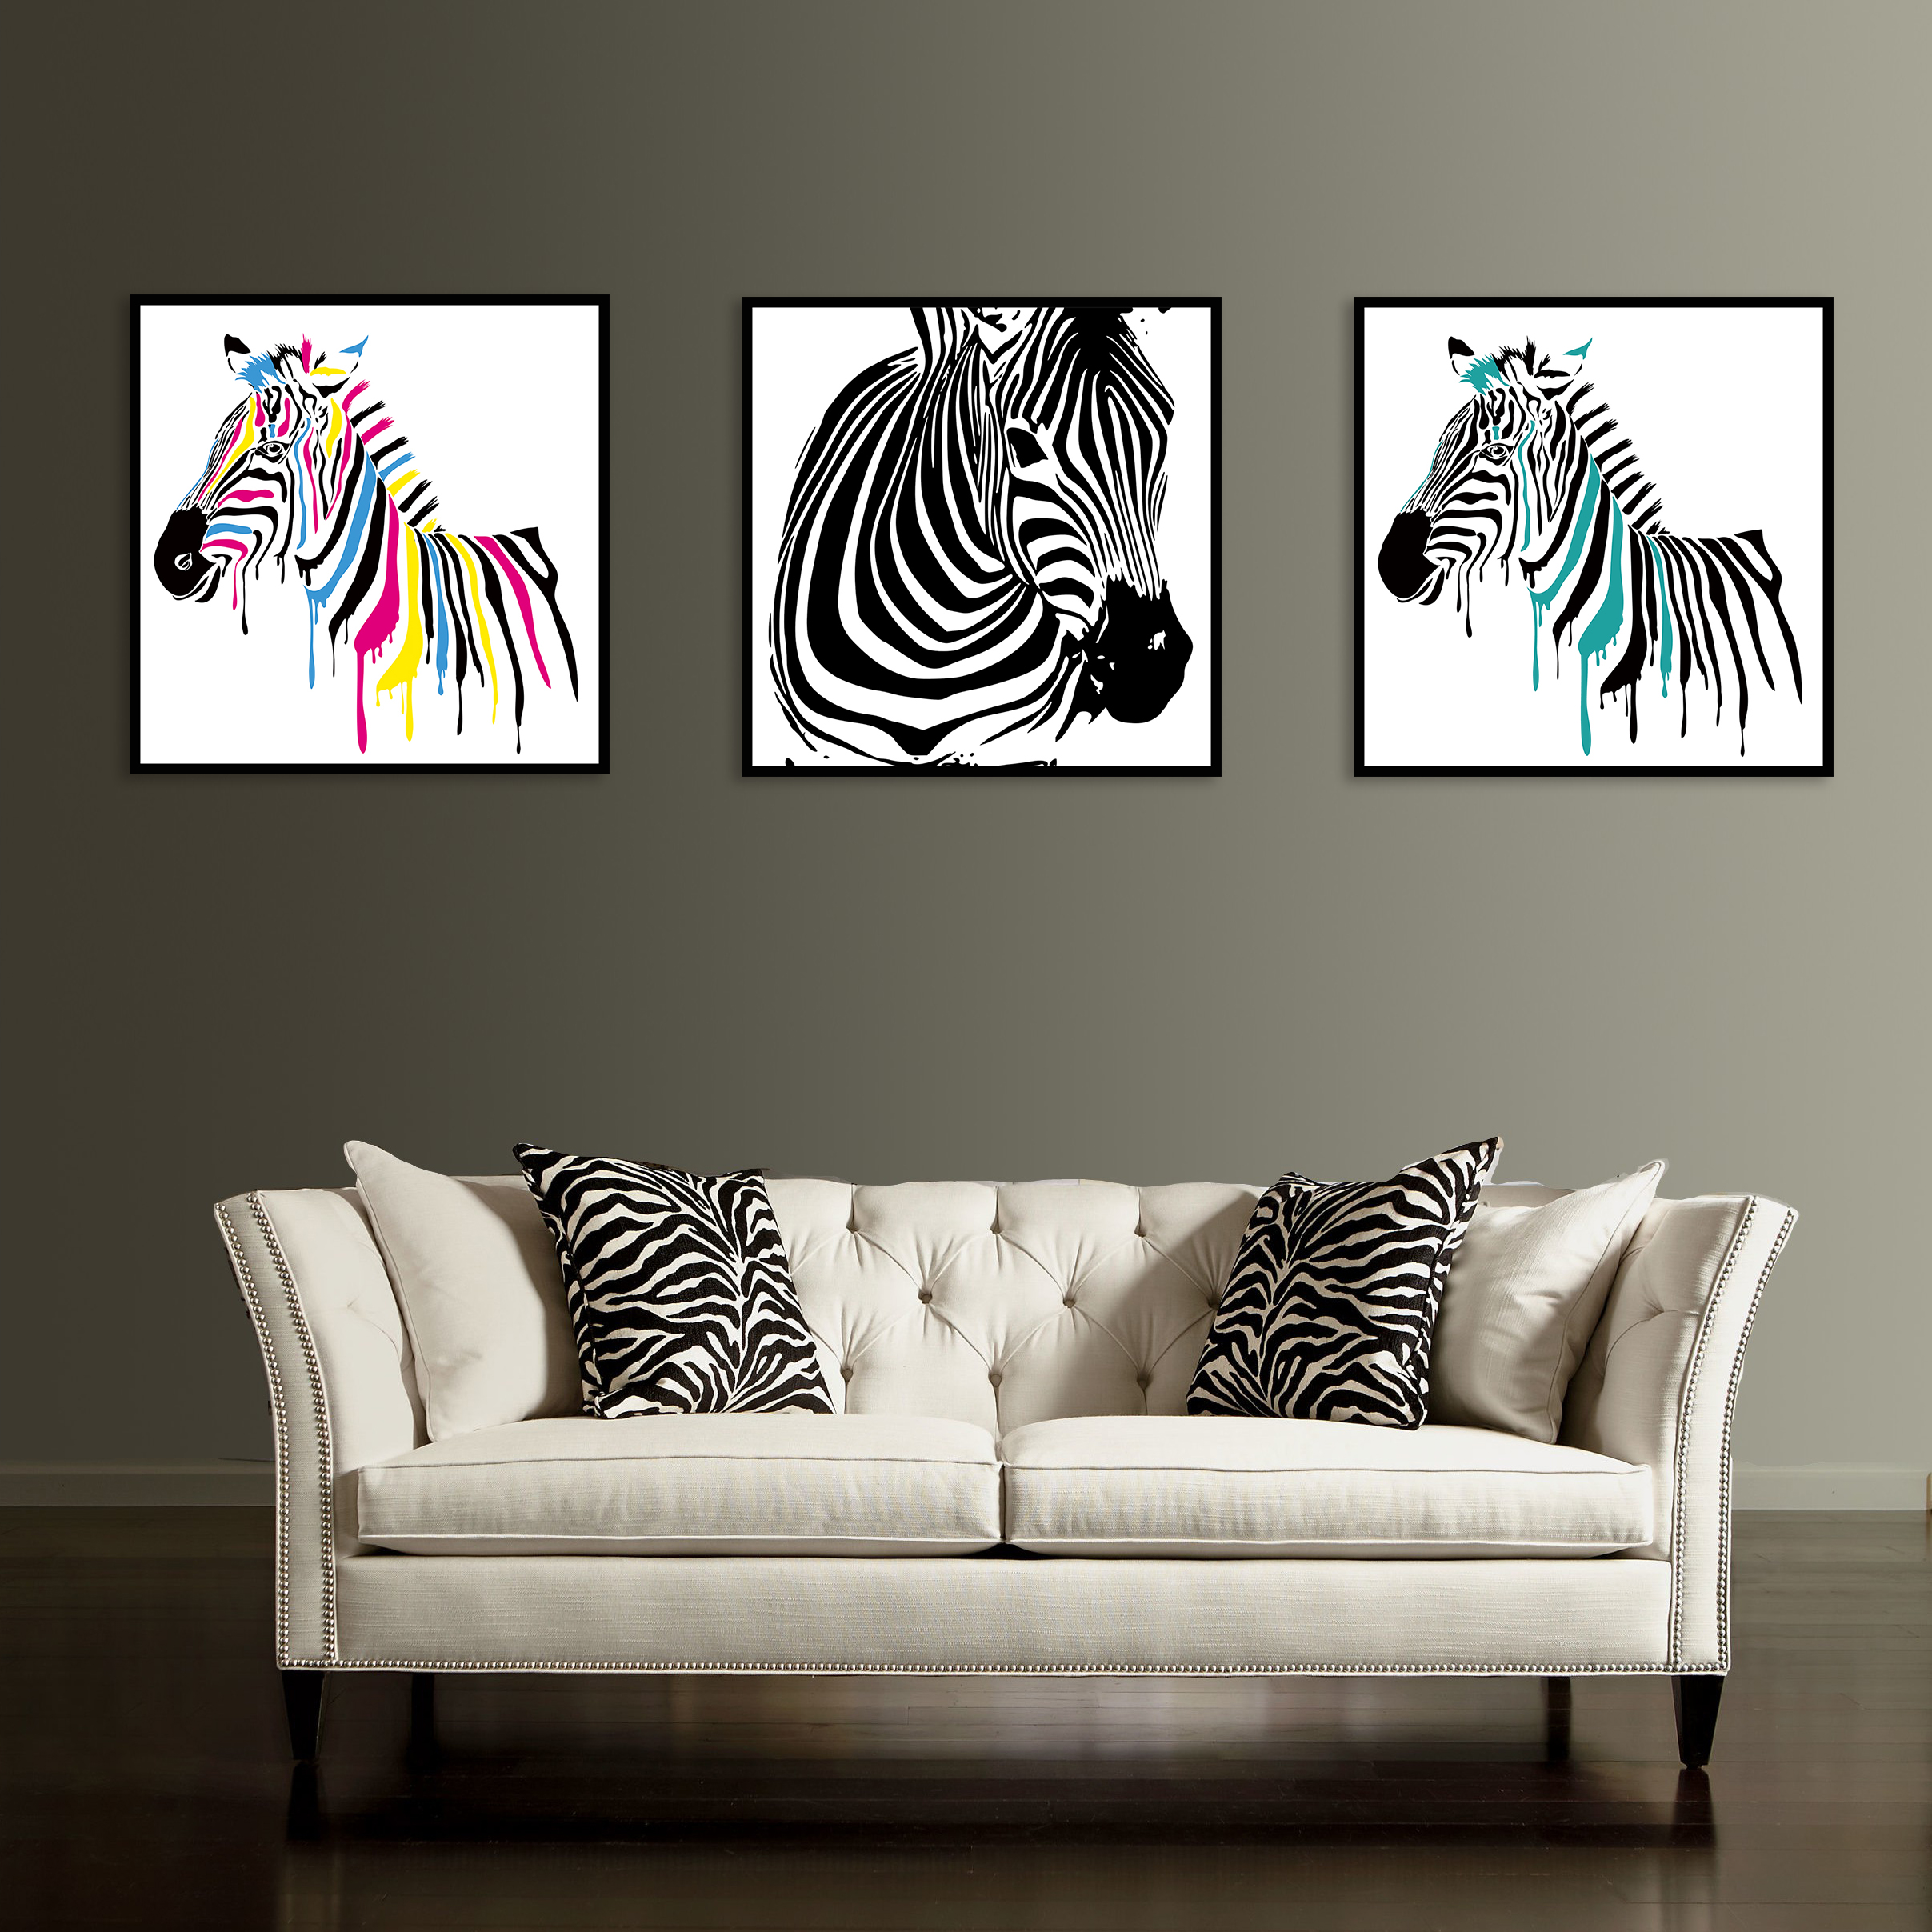 Abstract Zebra Canvas Painting Wall Posters Home Decoration Decorative Prints Living Room Modern Art Bedroom Me8763